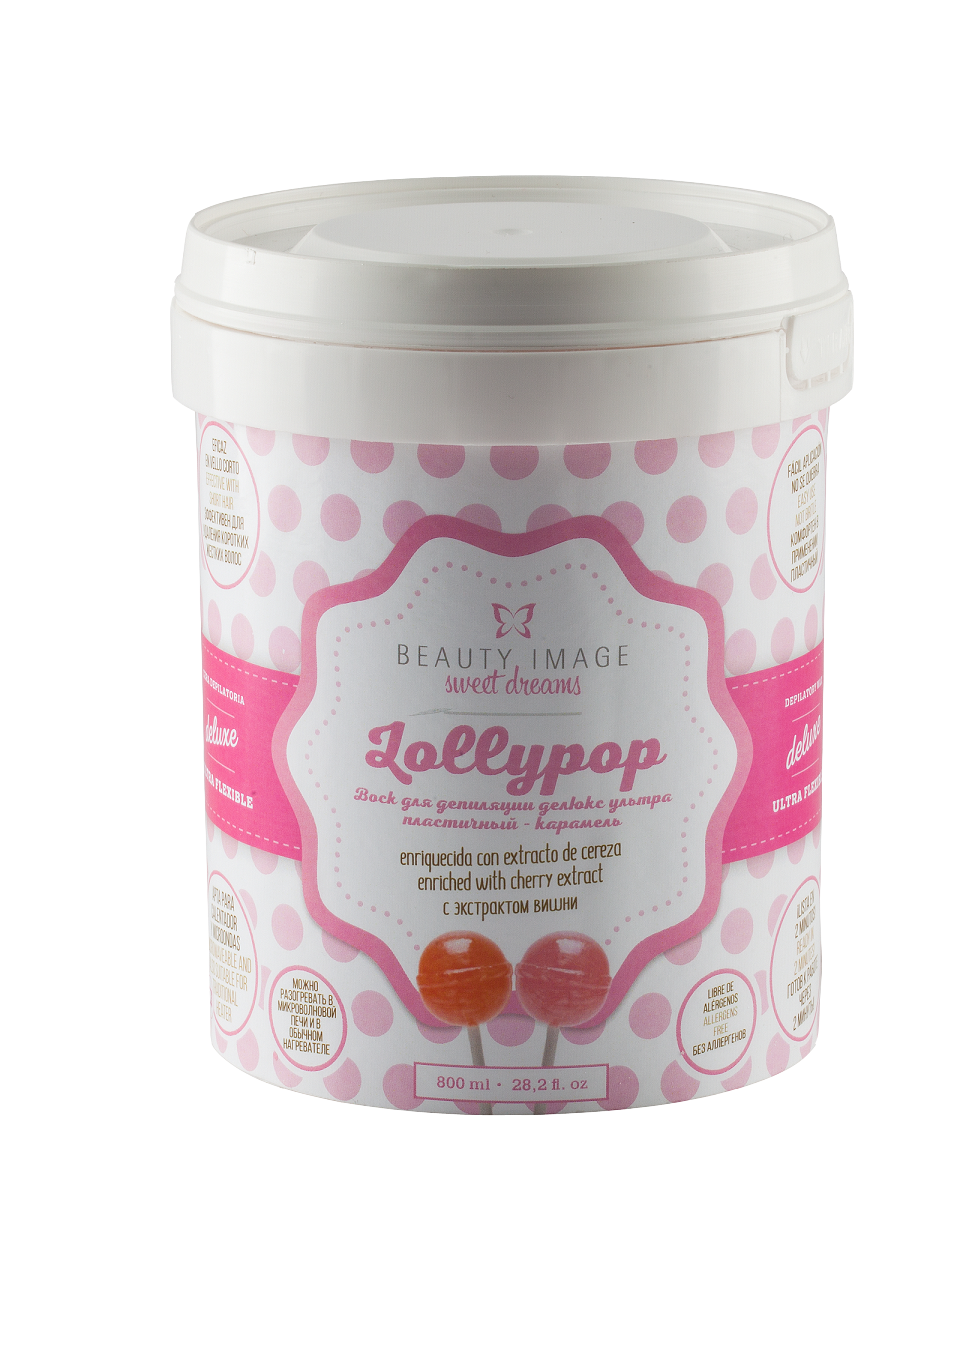 BEAUTY IMAGE - Warmwachs Dose für Mikrowelle   Sweet Dreams   Lollypop